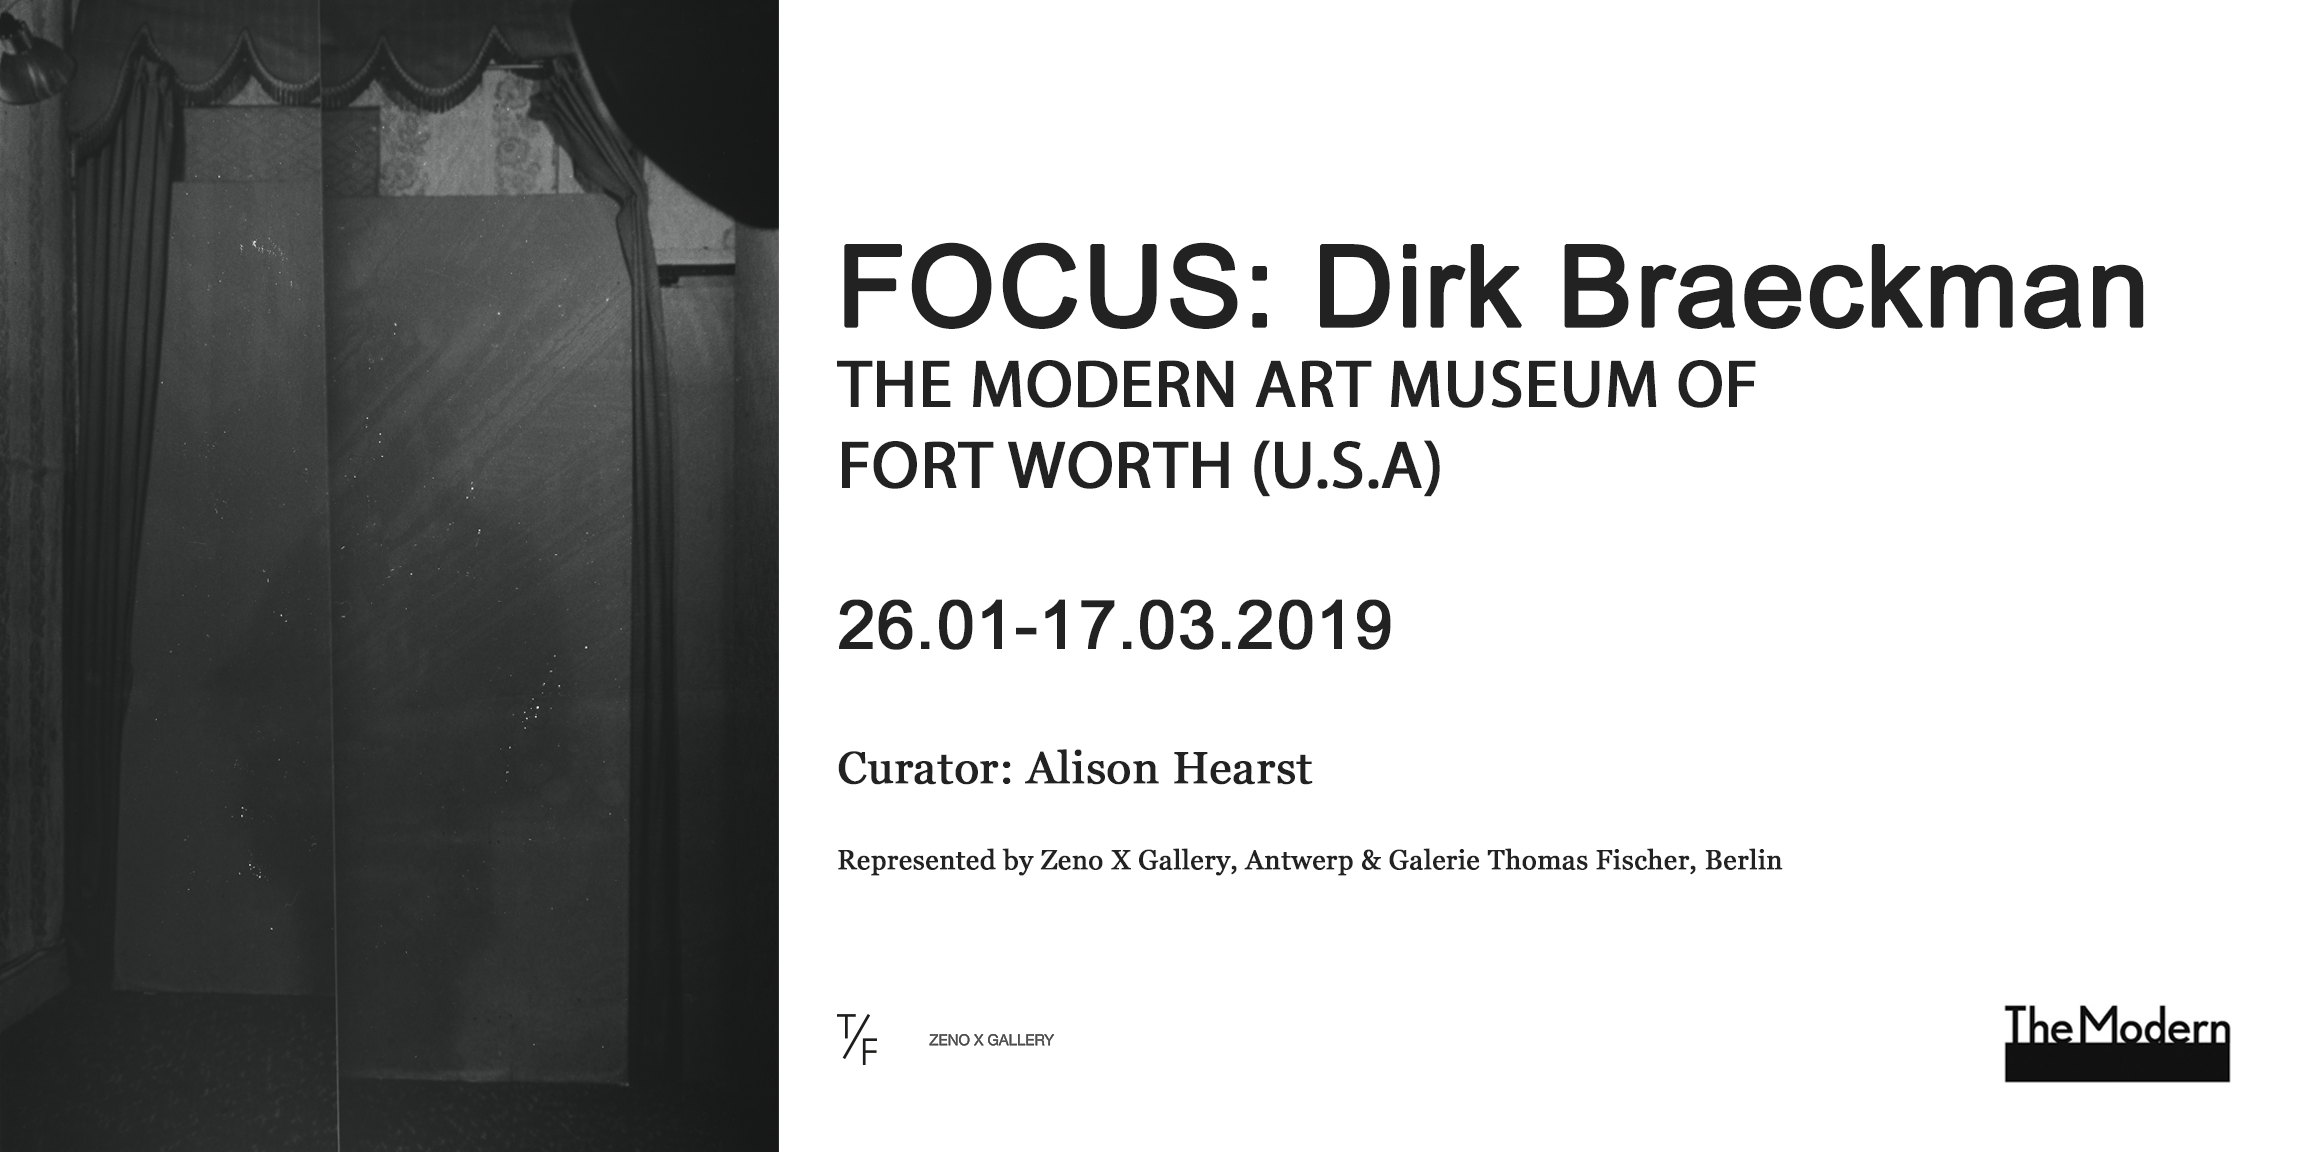 Focus: Dirk Braeckman at Modern Art Museum of Fort Worth, USA — 26.01–17.03.2019